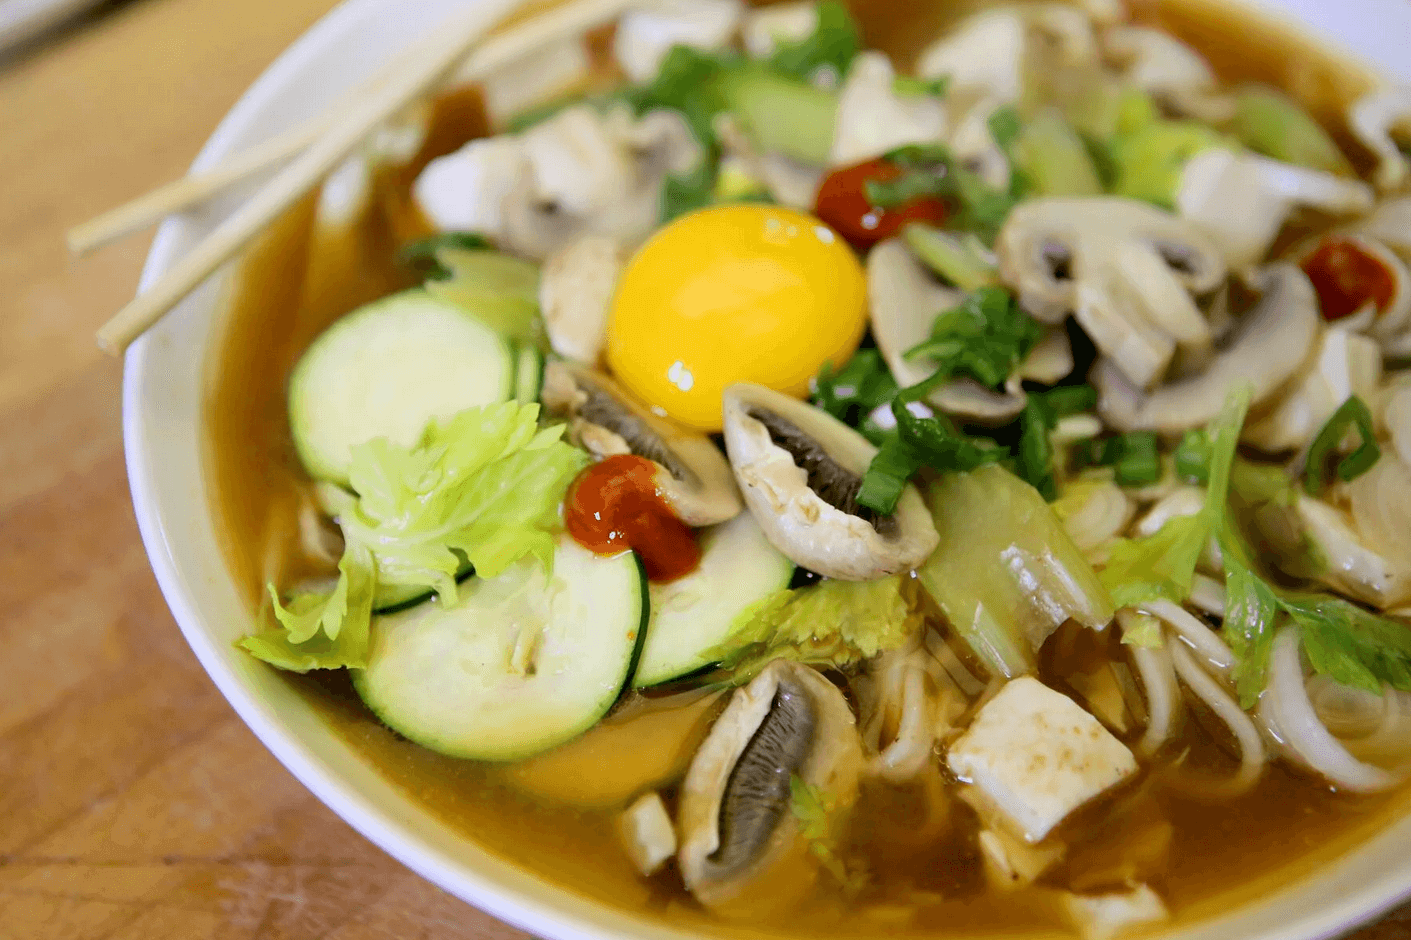 Celery and Miso Udon Soup